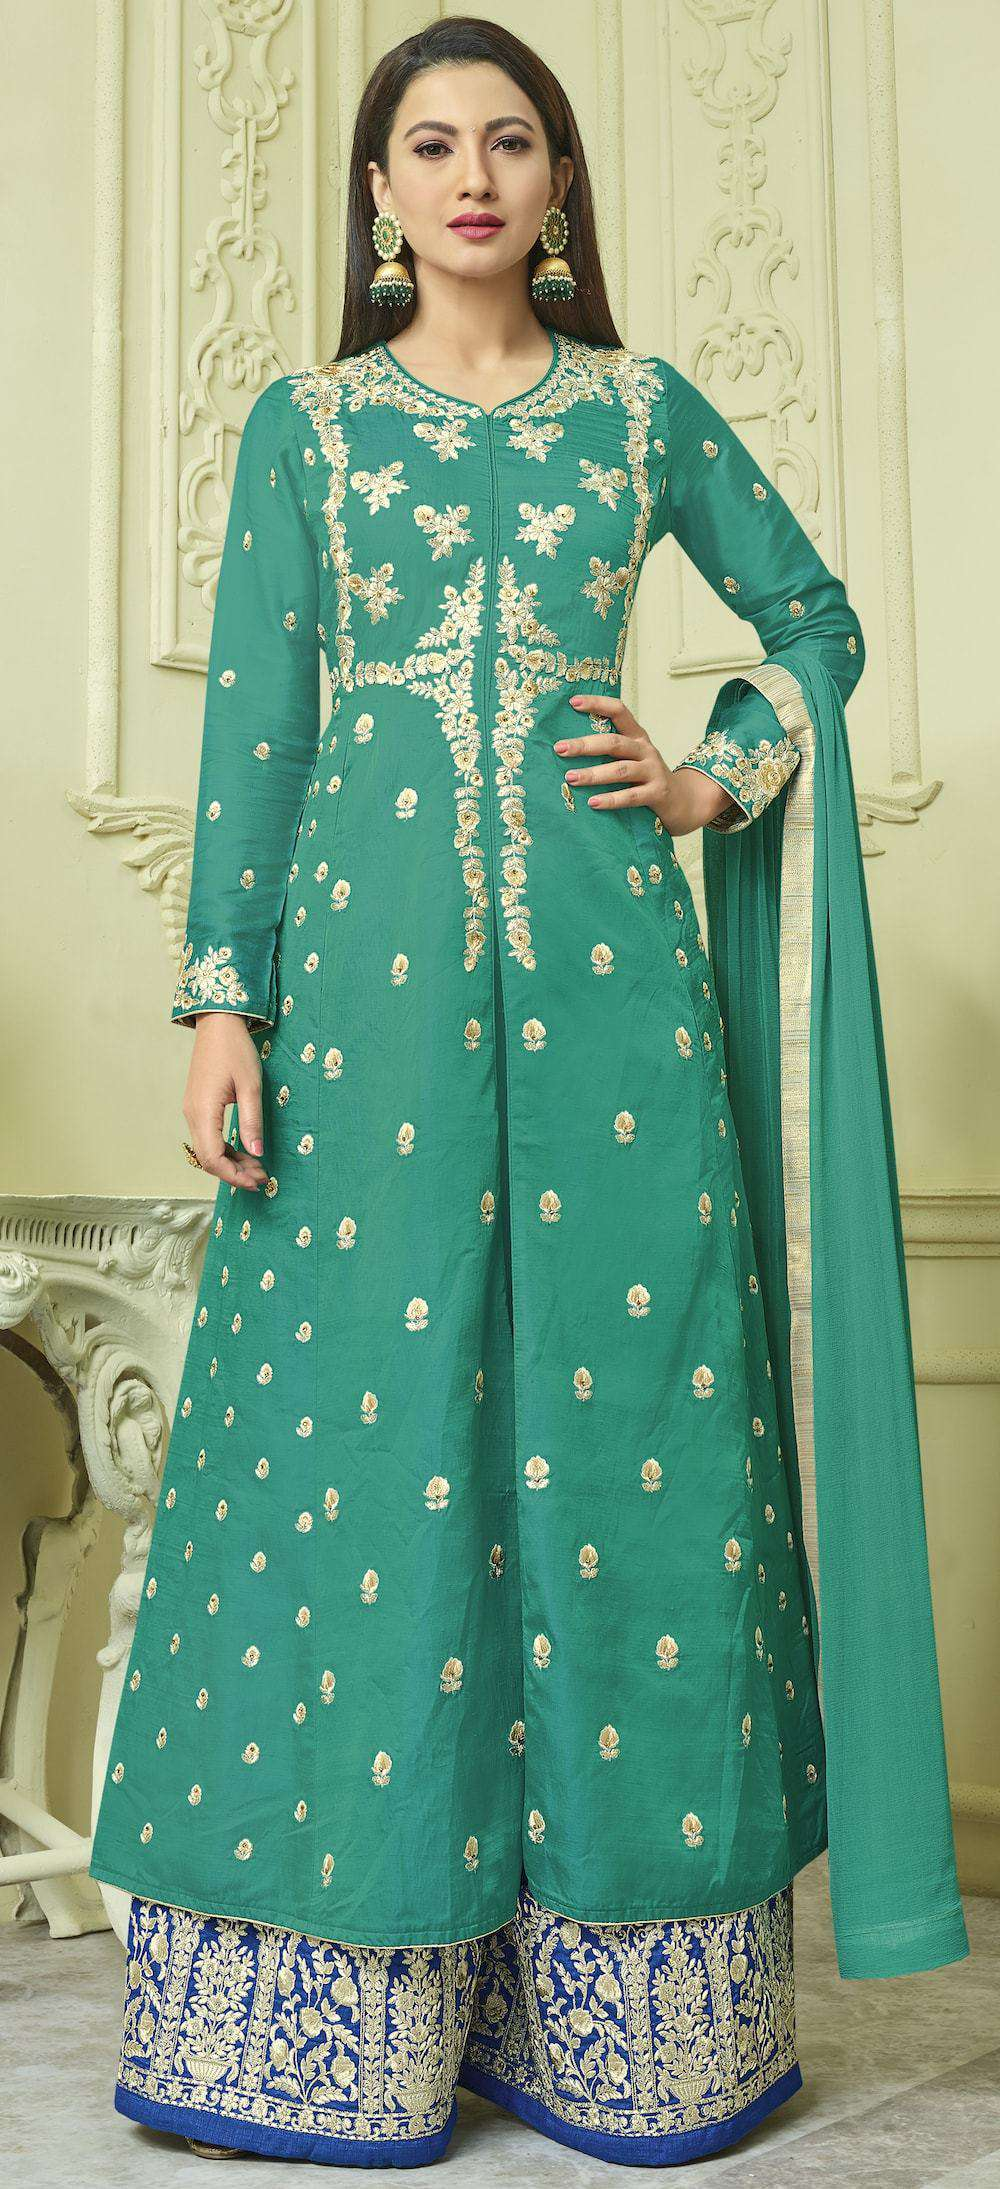 Unique Embroidered Bottle Green & Blue  Anarkali Salwar Kameez MYSK-233